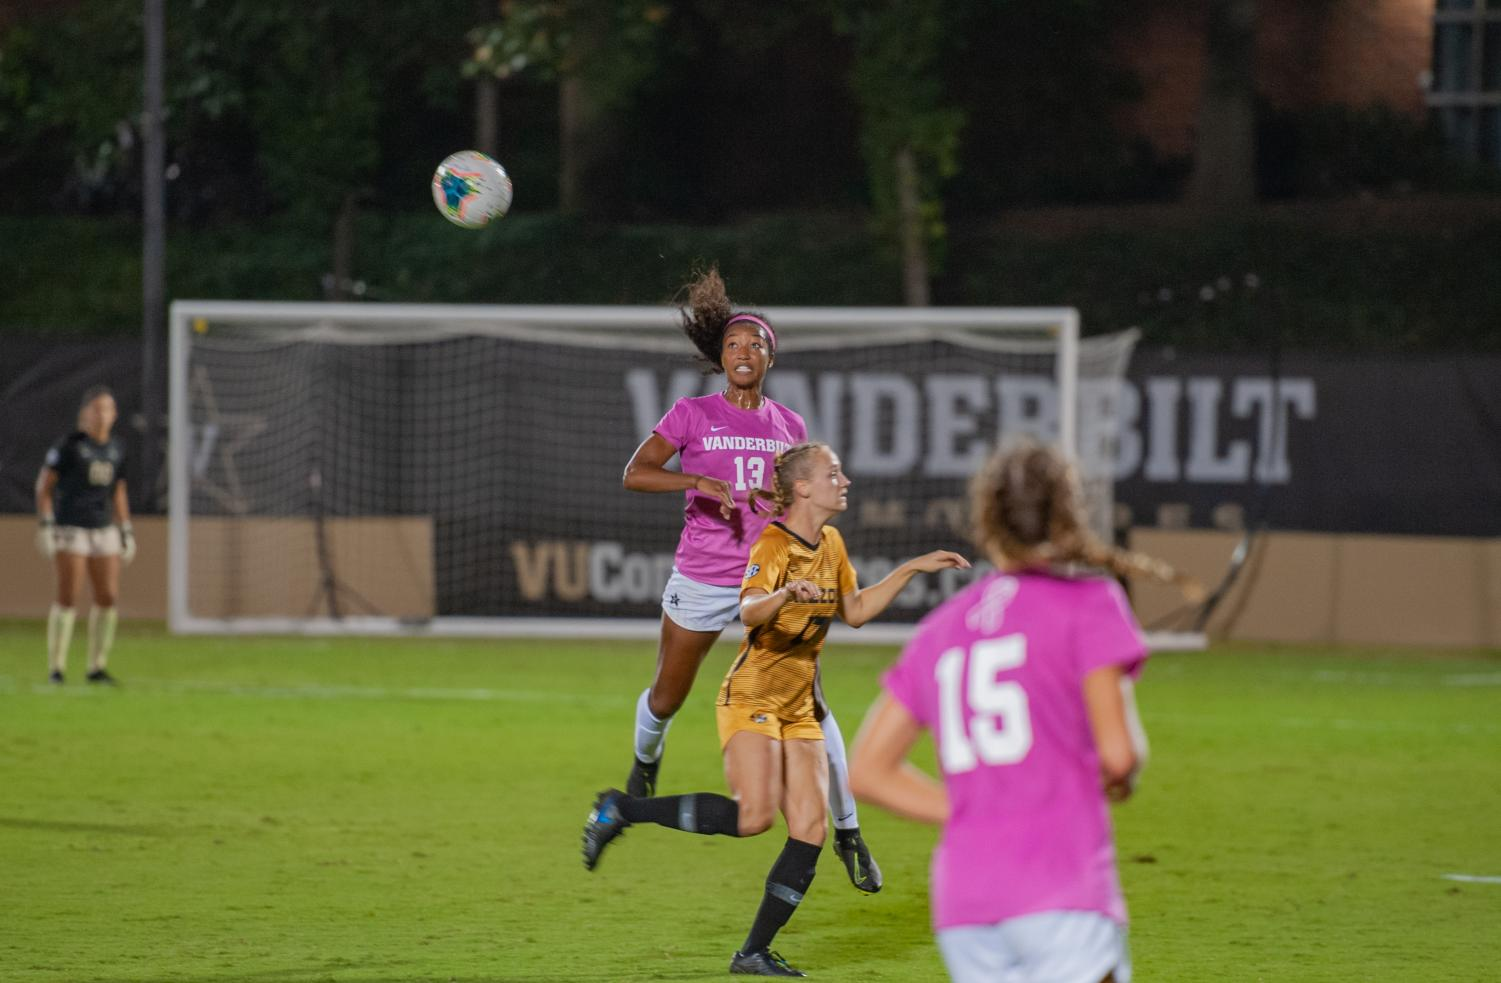 Vanderbilt soccer returned to strong home form, defeating Missouri 2-1 on Thursday night. Photo by Truman McDaniel